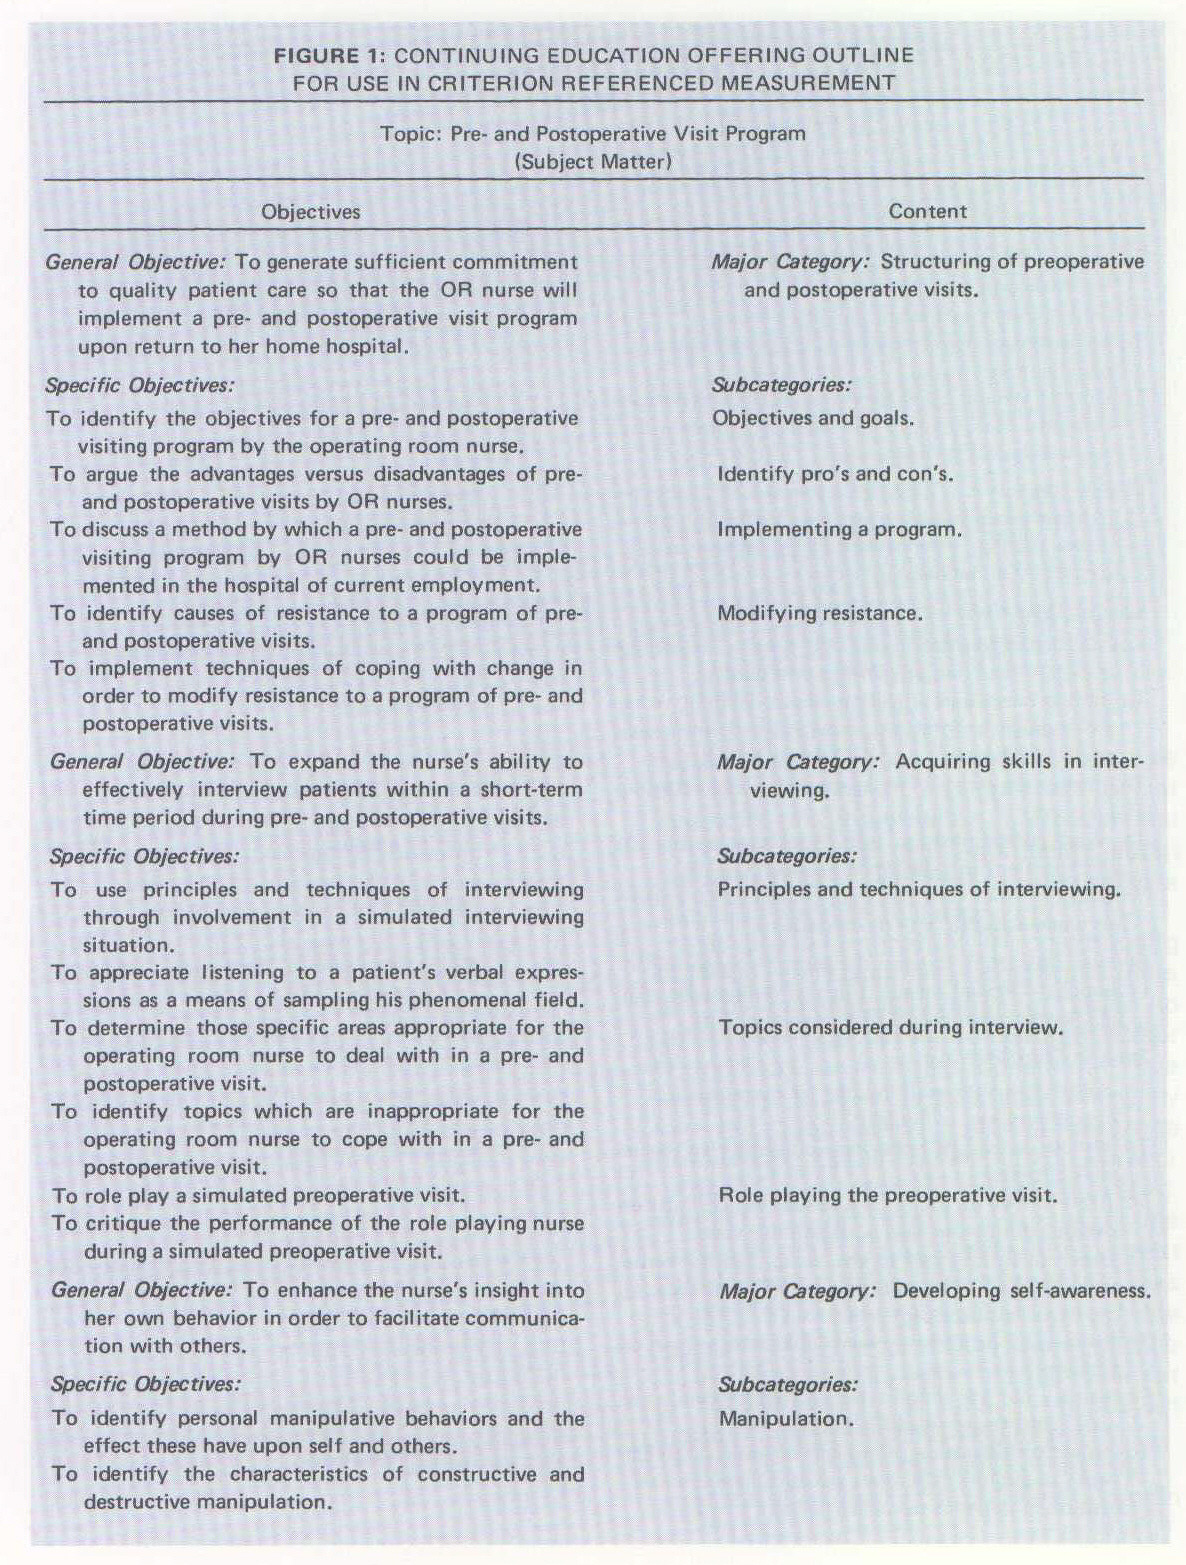 FIGURE 1: CONTINUING EDUCATION OFFERING OUTLINE FOR USE IN CRITERION REFERENCED MEASUREMENT